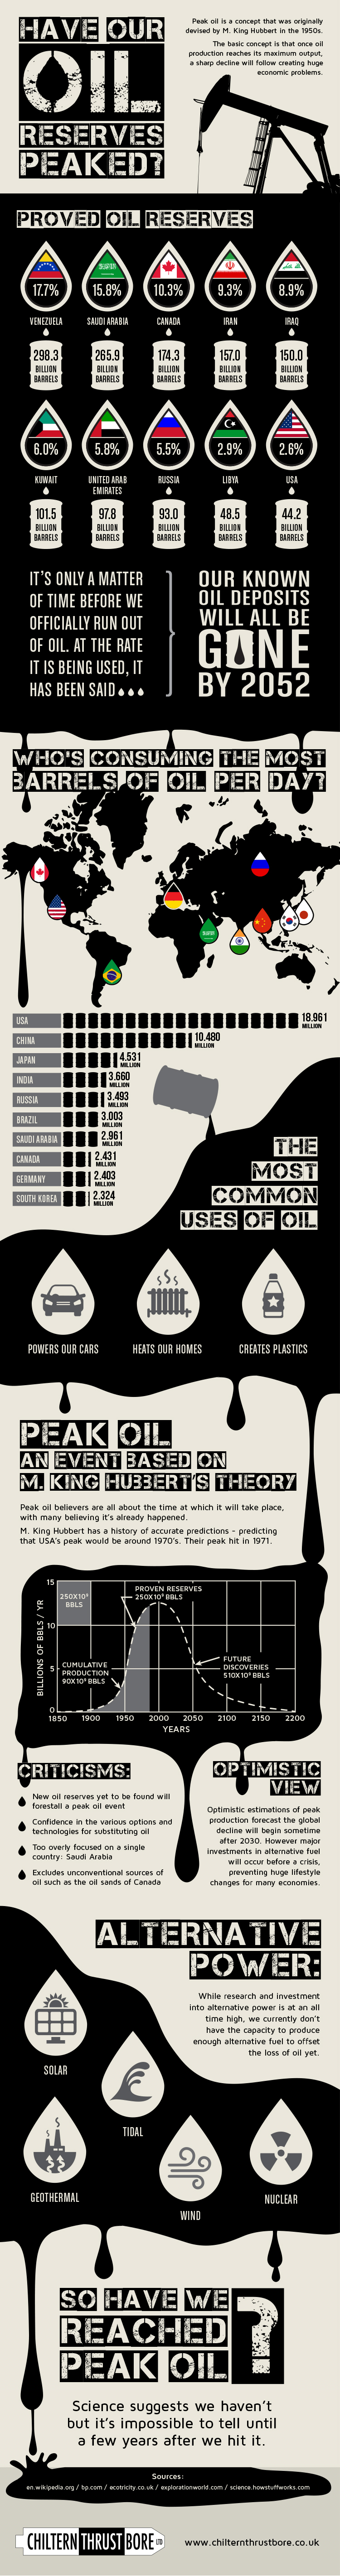 Have Our Oil Reserves Peaked? (Infographic)